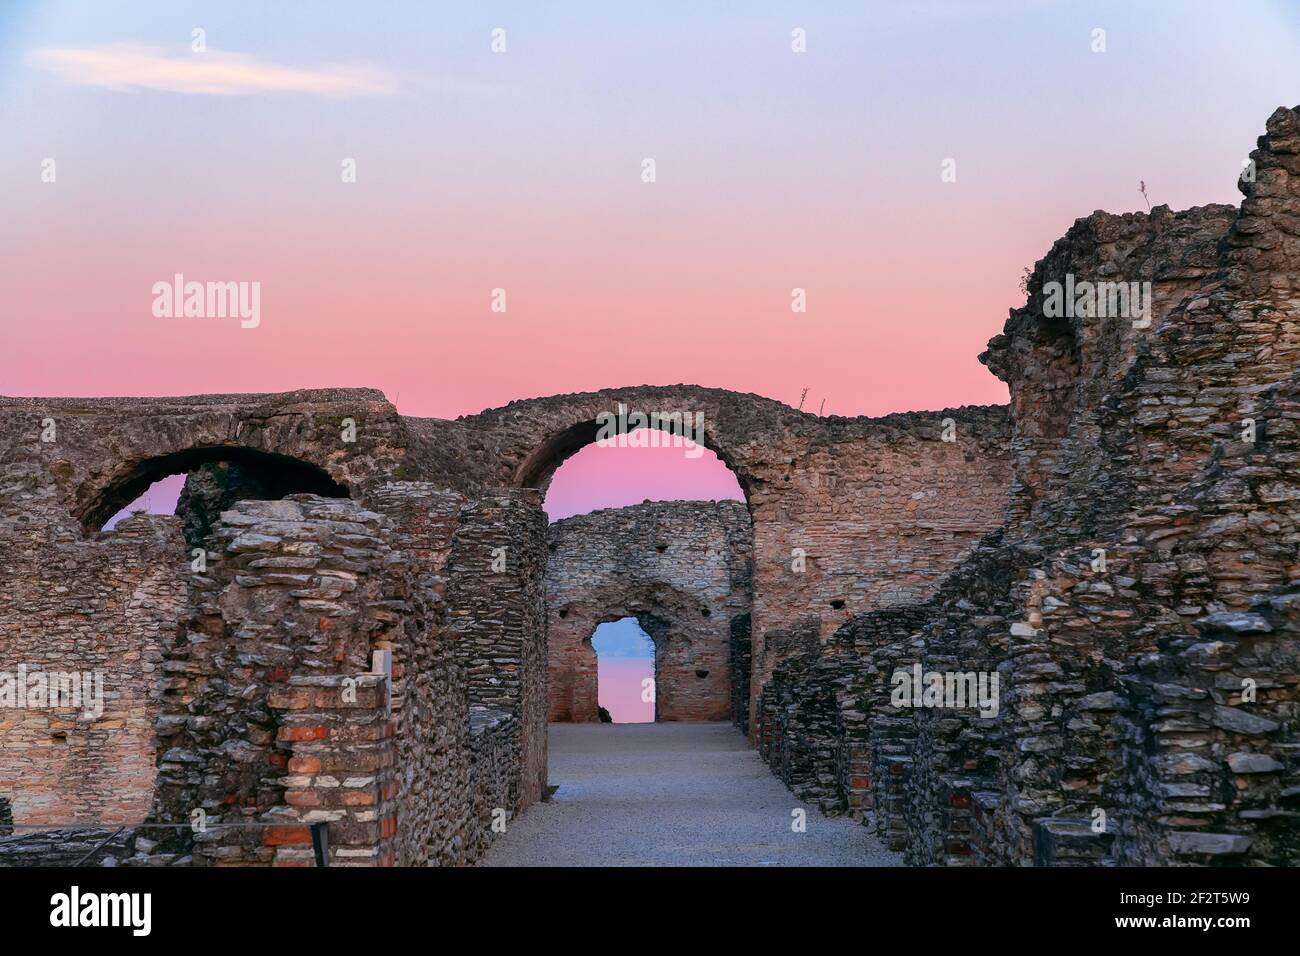 Scenic ruins in the rays of sunset of Grottoes of Catullus, roman villa in Sirmione city, Lake Garda, Italy. Winter time. Stock Photo